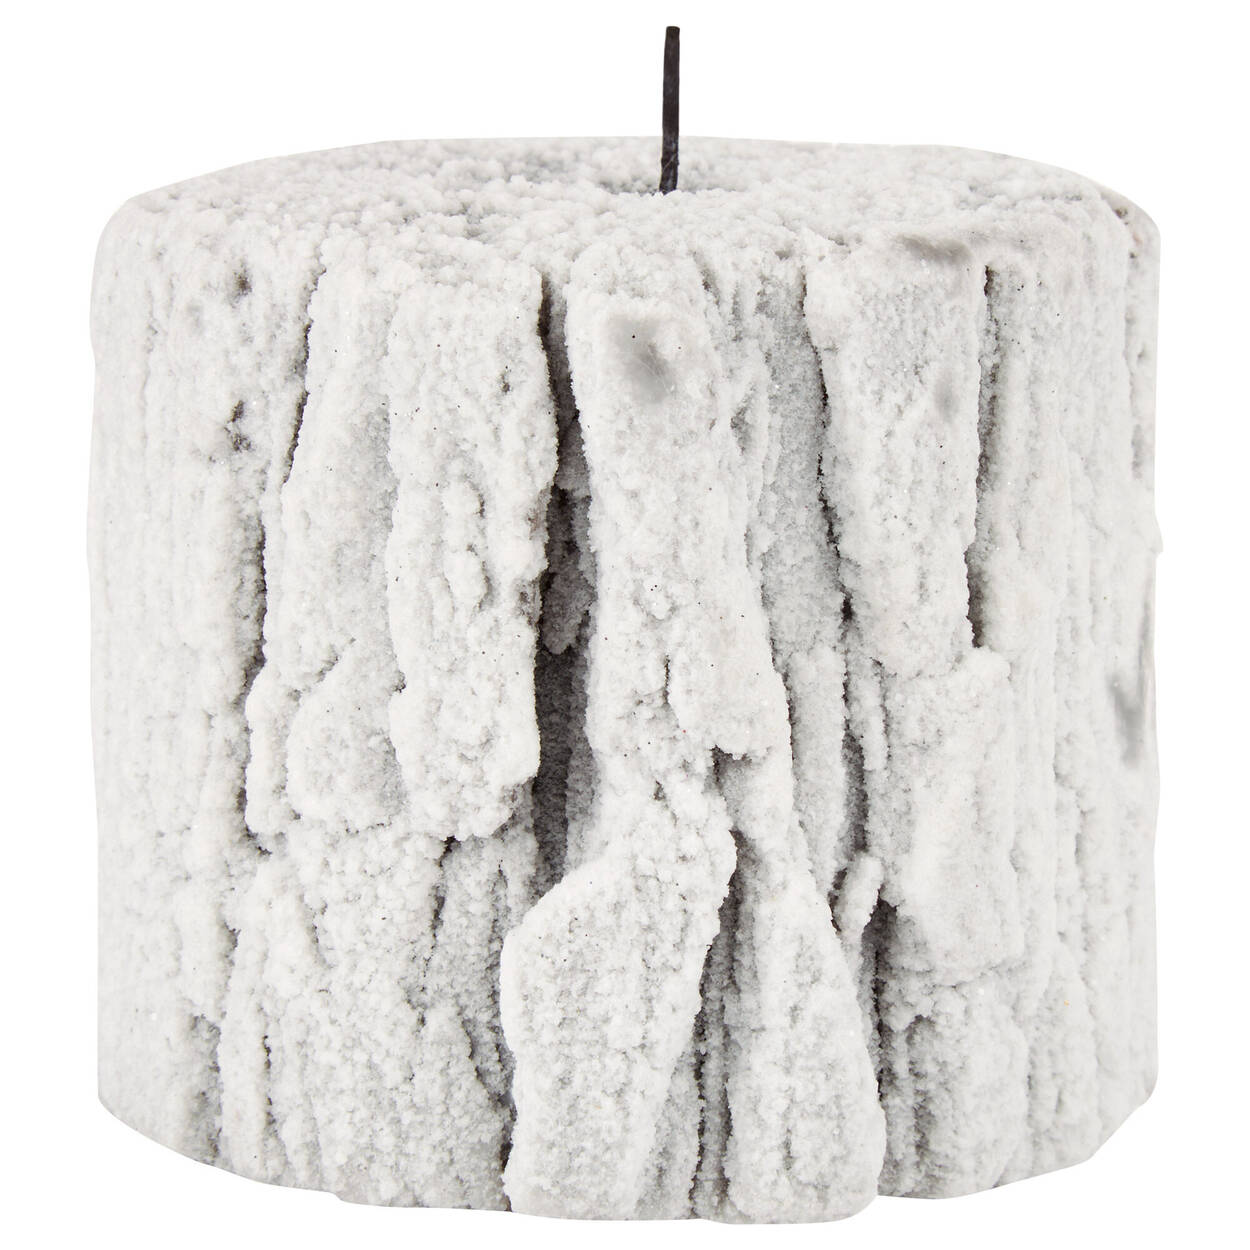 Snowy Bark Candle